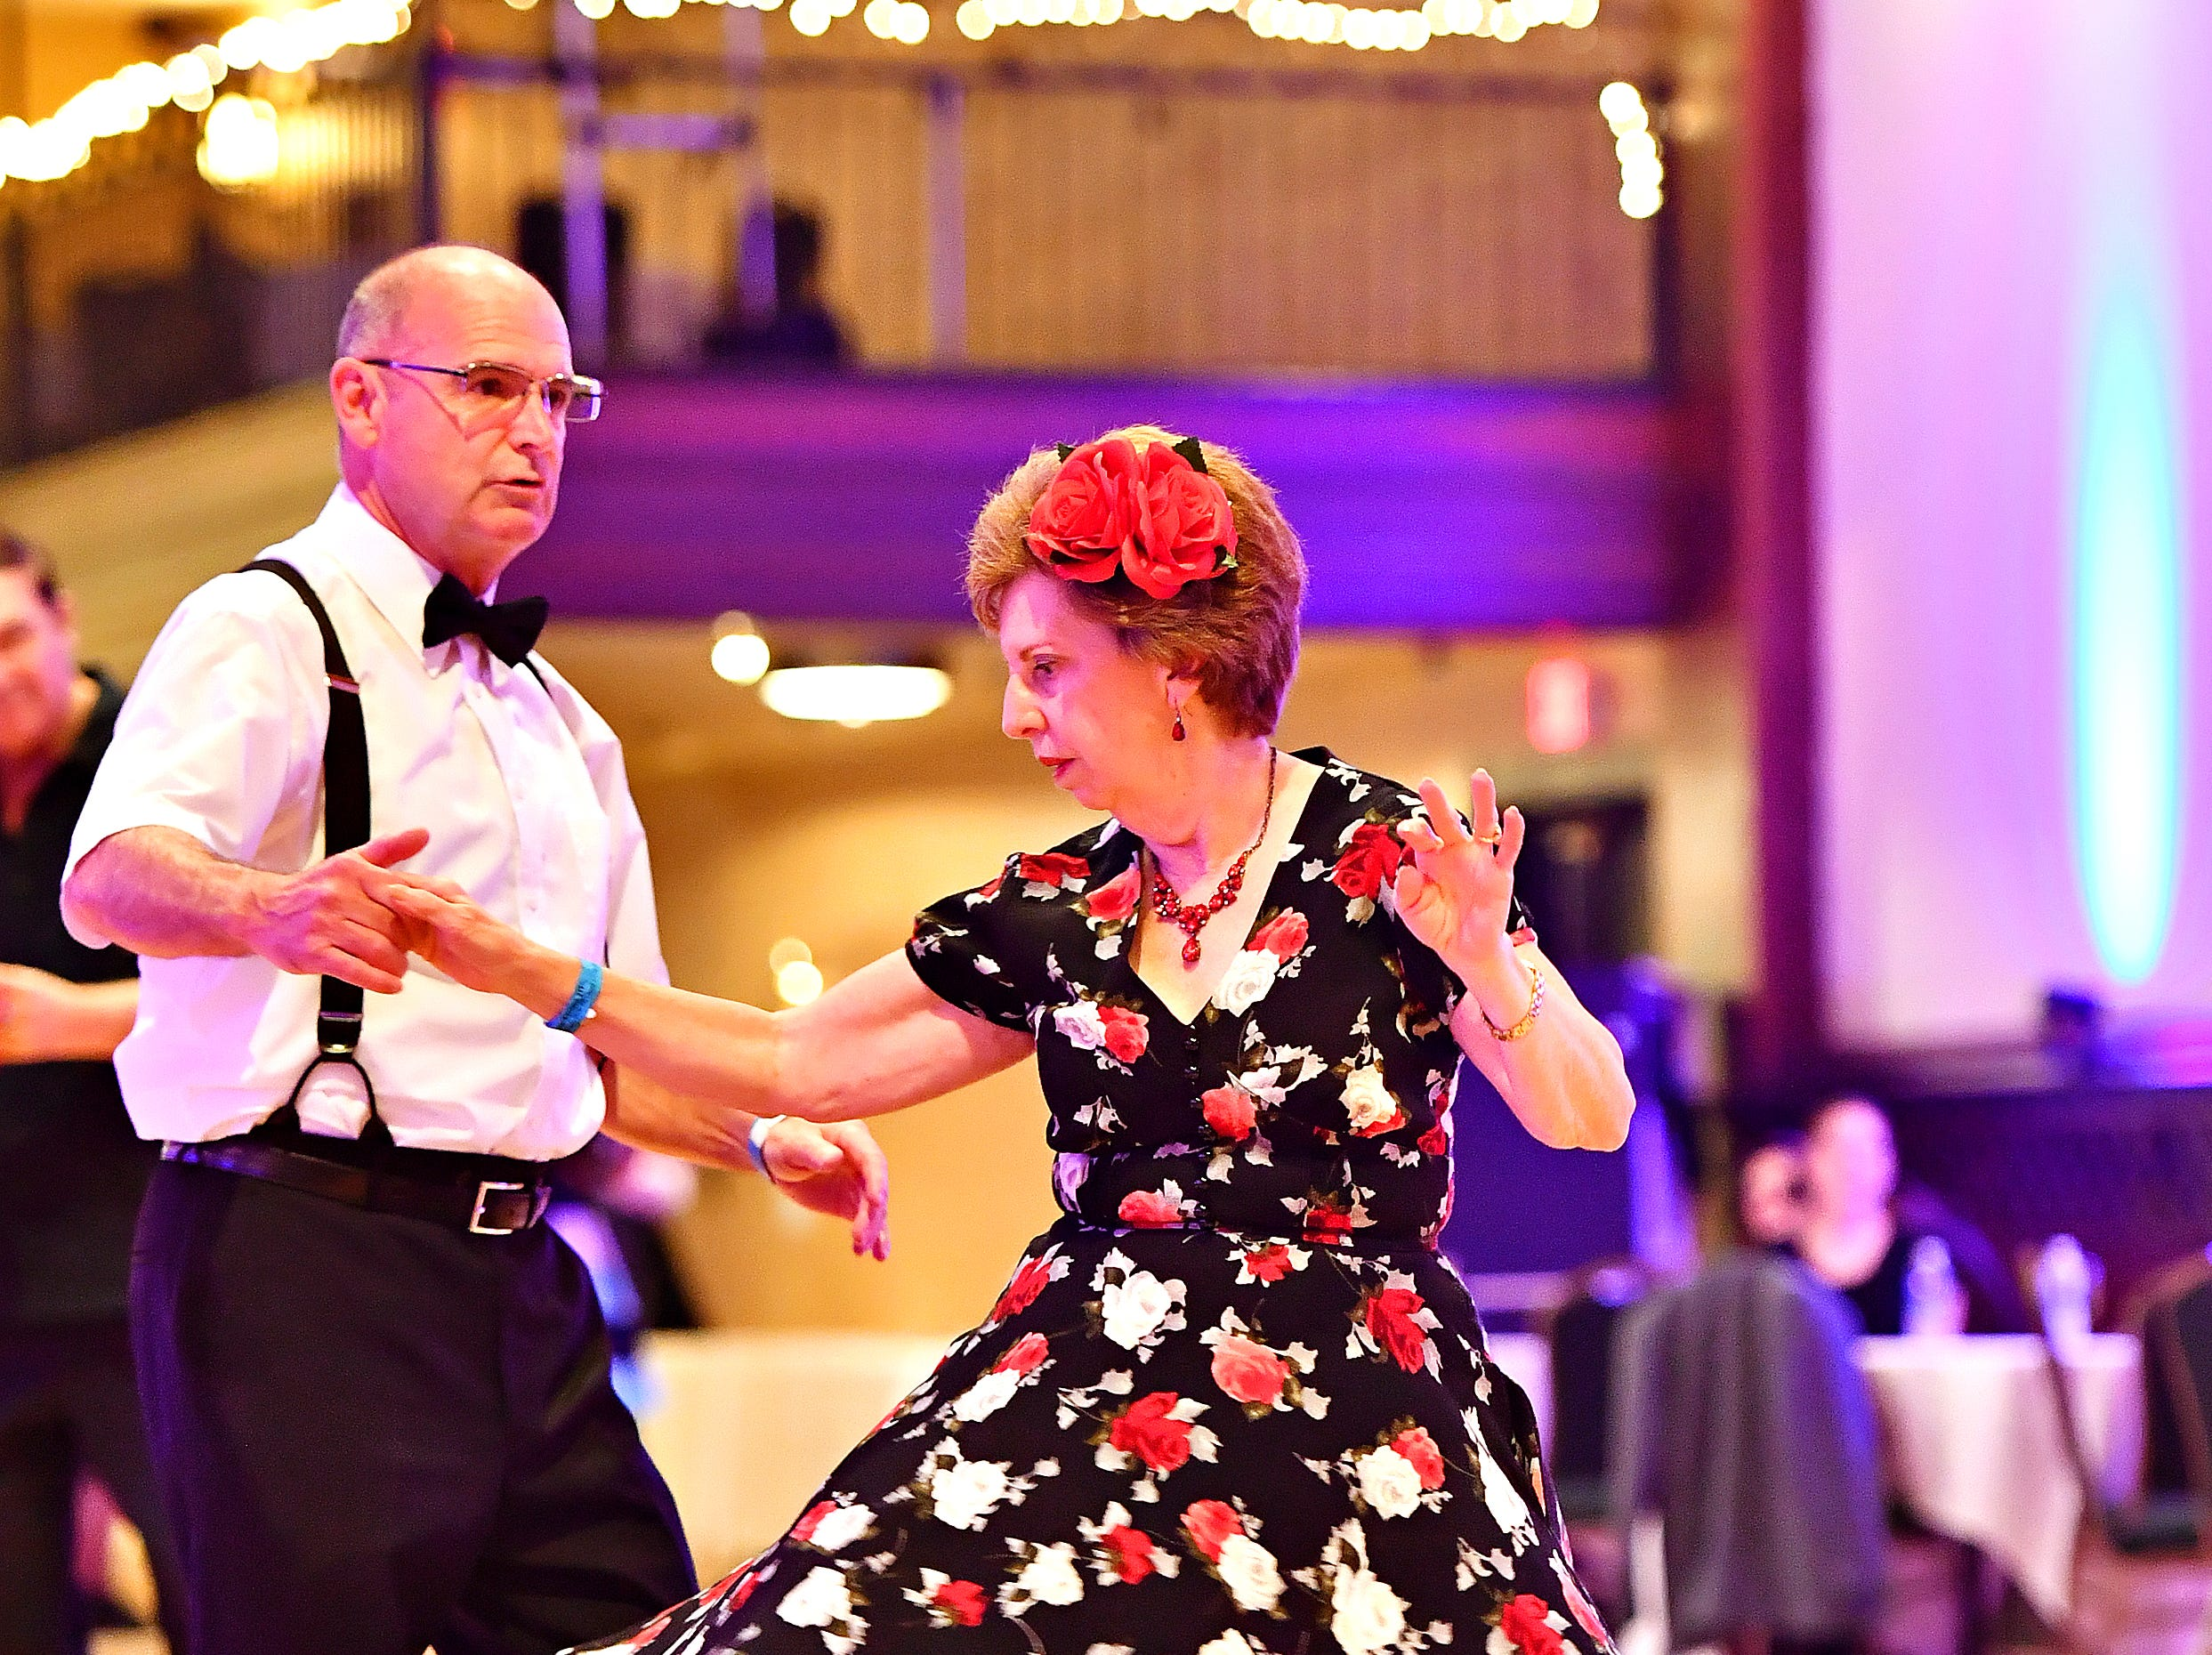 Bill Snider, left, of Culpeper, Va., and Theresa Dagenhart, of Burke, Va., dance as Parlour Noir performs during Big Swing Thing III Premiere Swing Music & Dance Festival at Valencia Ballroom in York City, Friday, April 12, 2019. Dawn J. Sagert photo